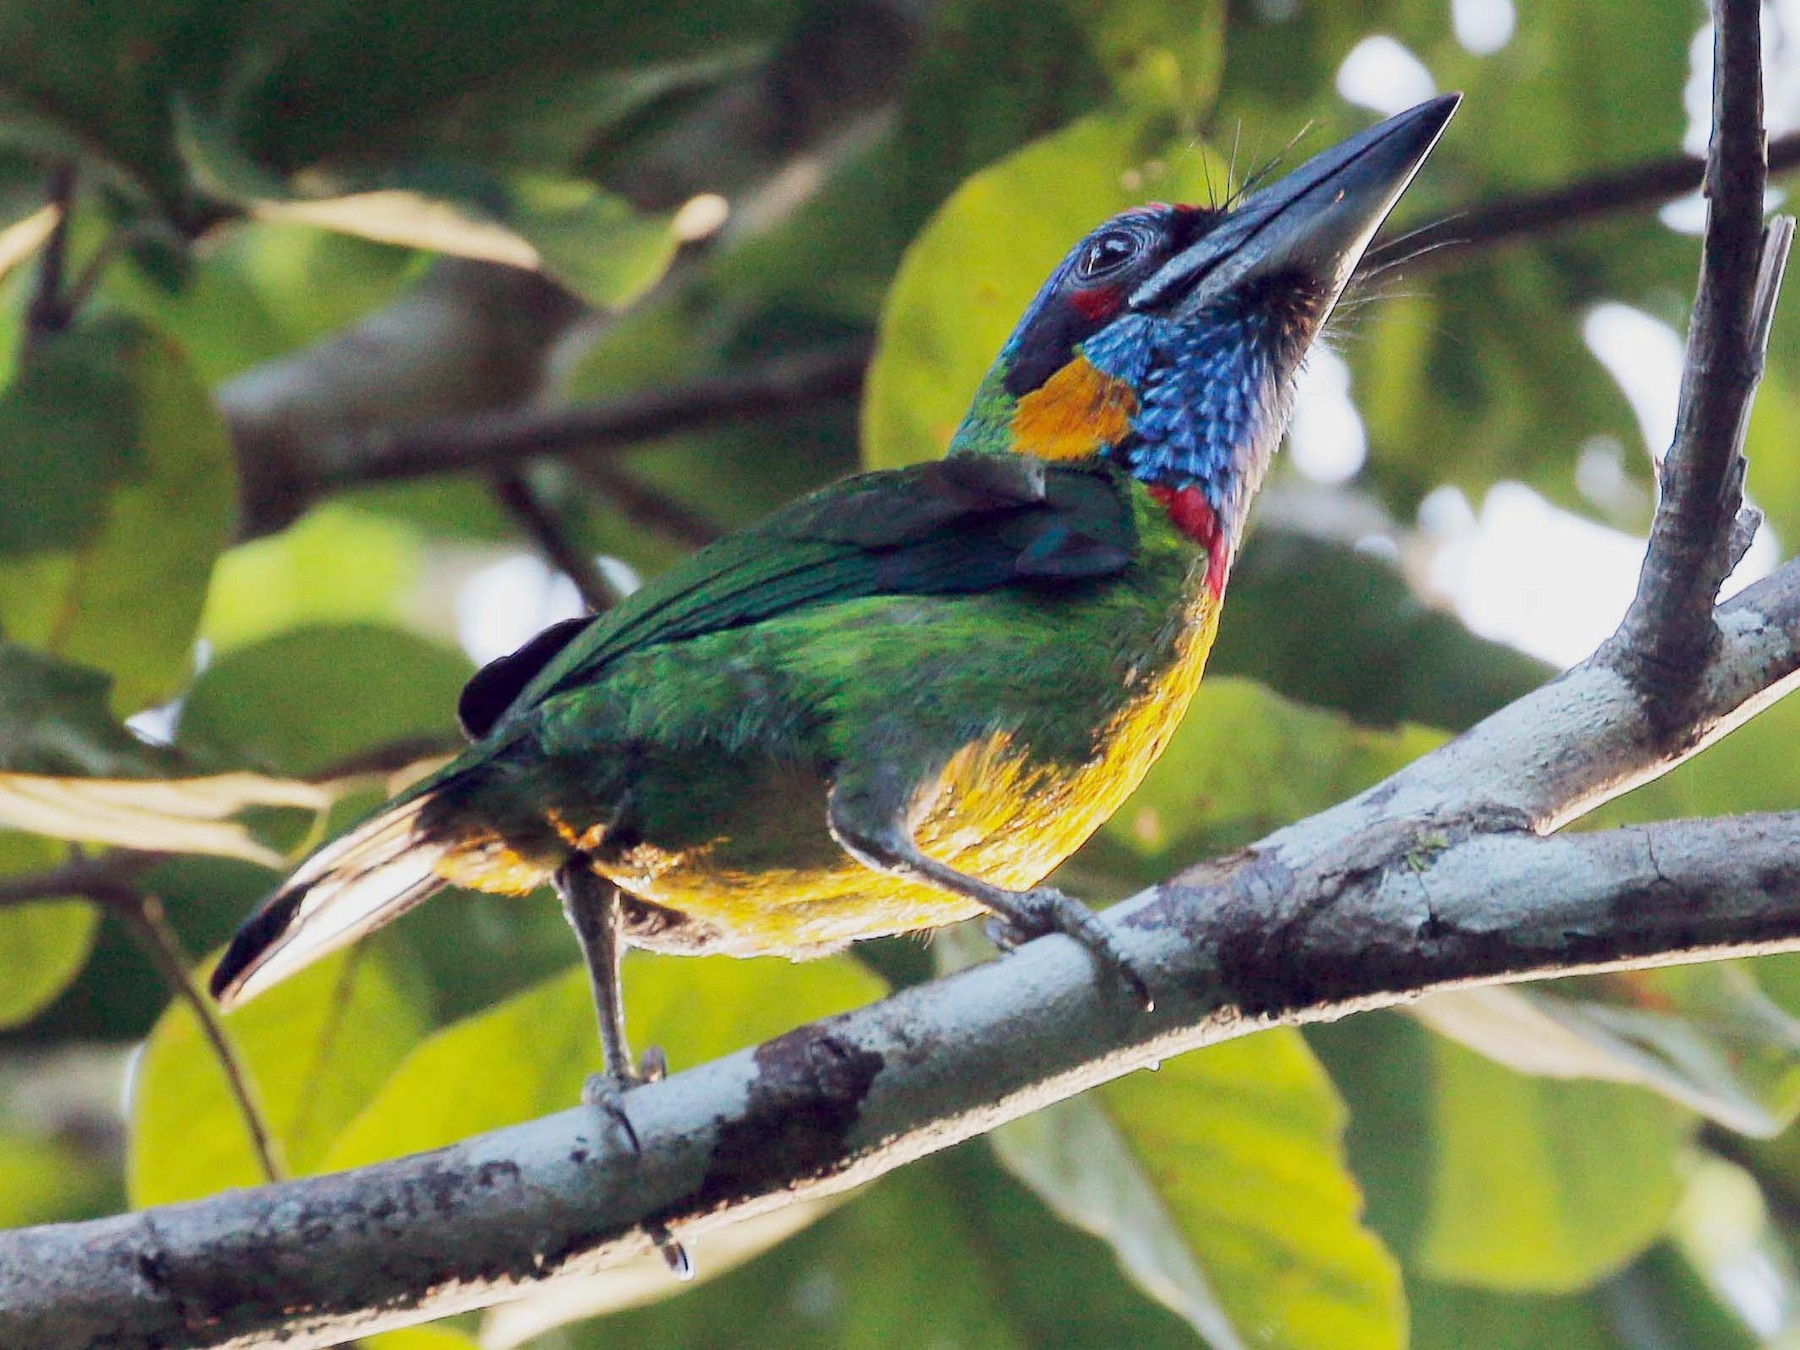 Red-crowned Barbet - Neoh Hor Kee